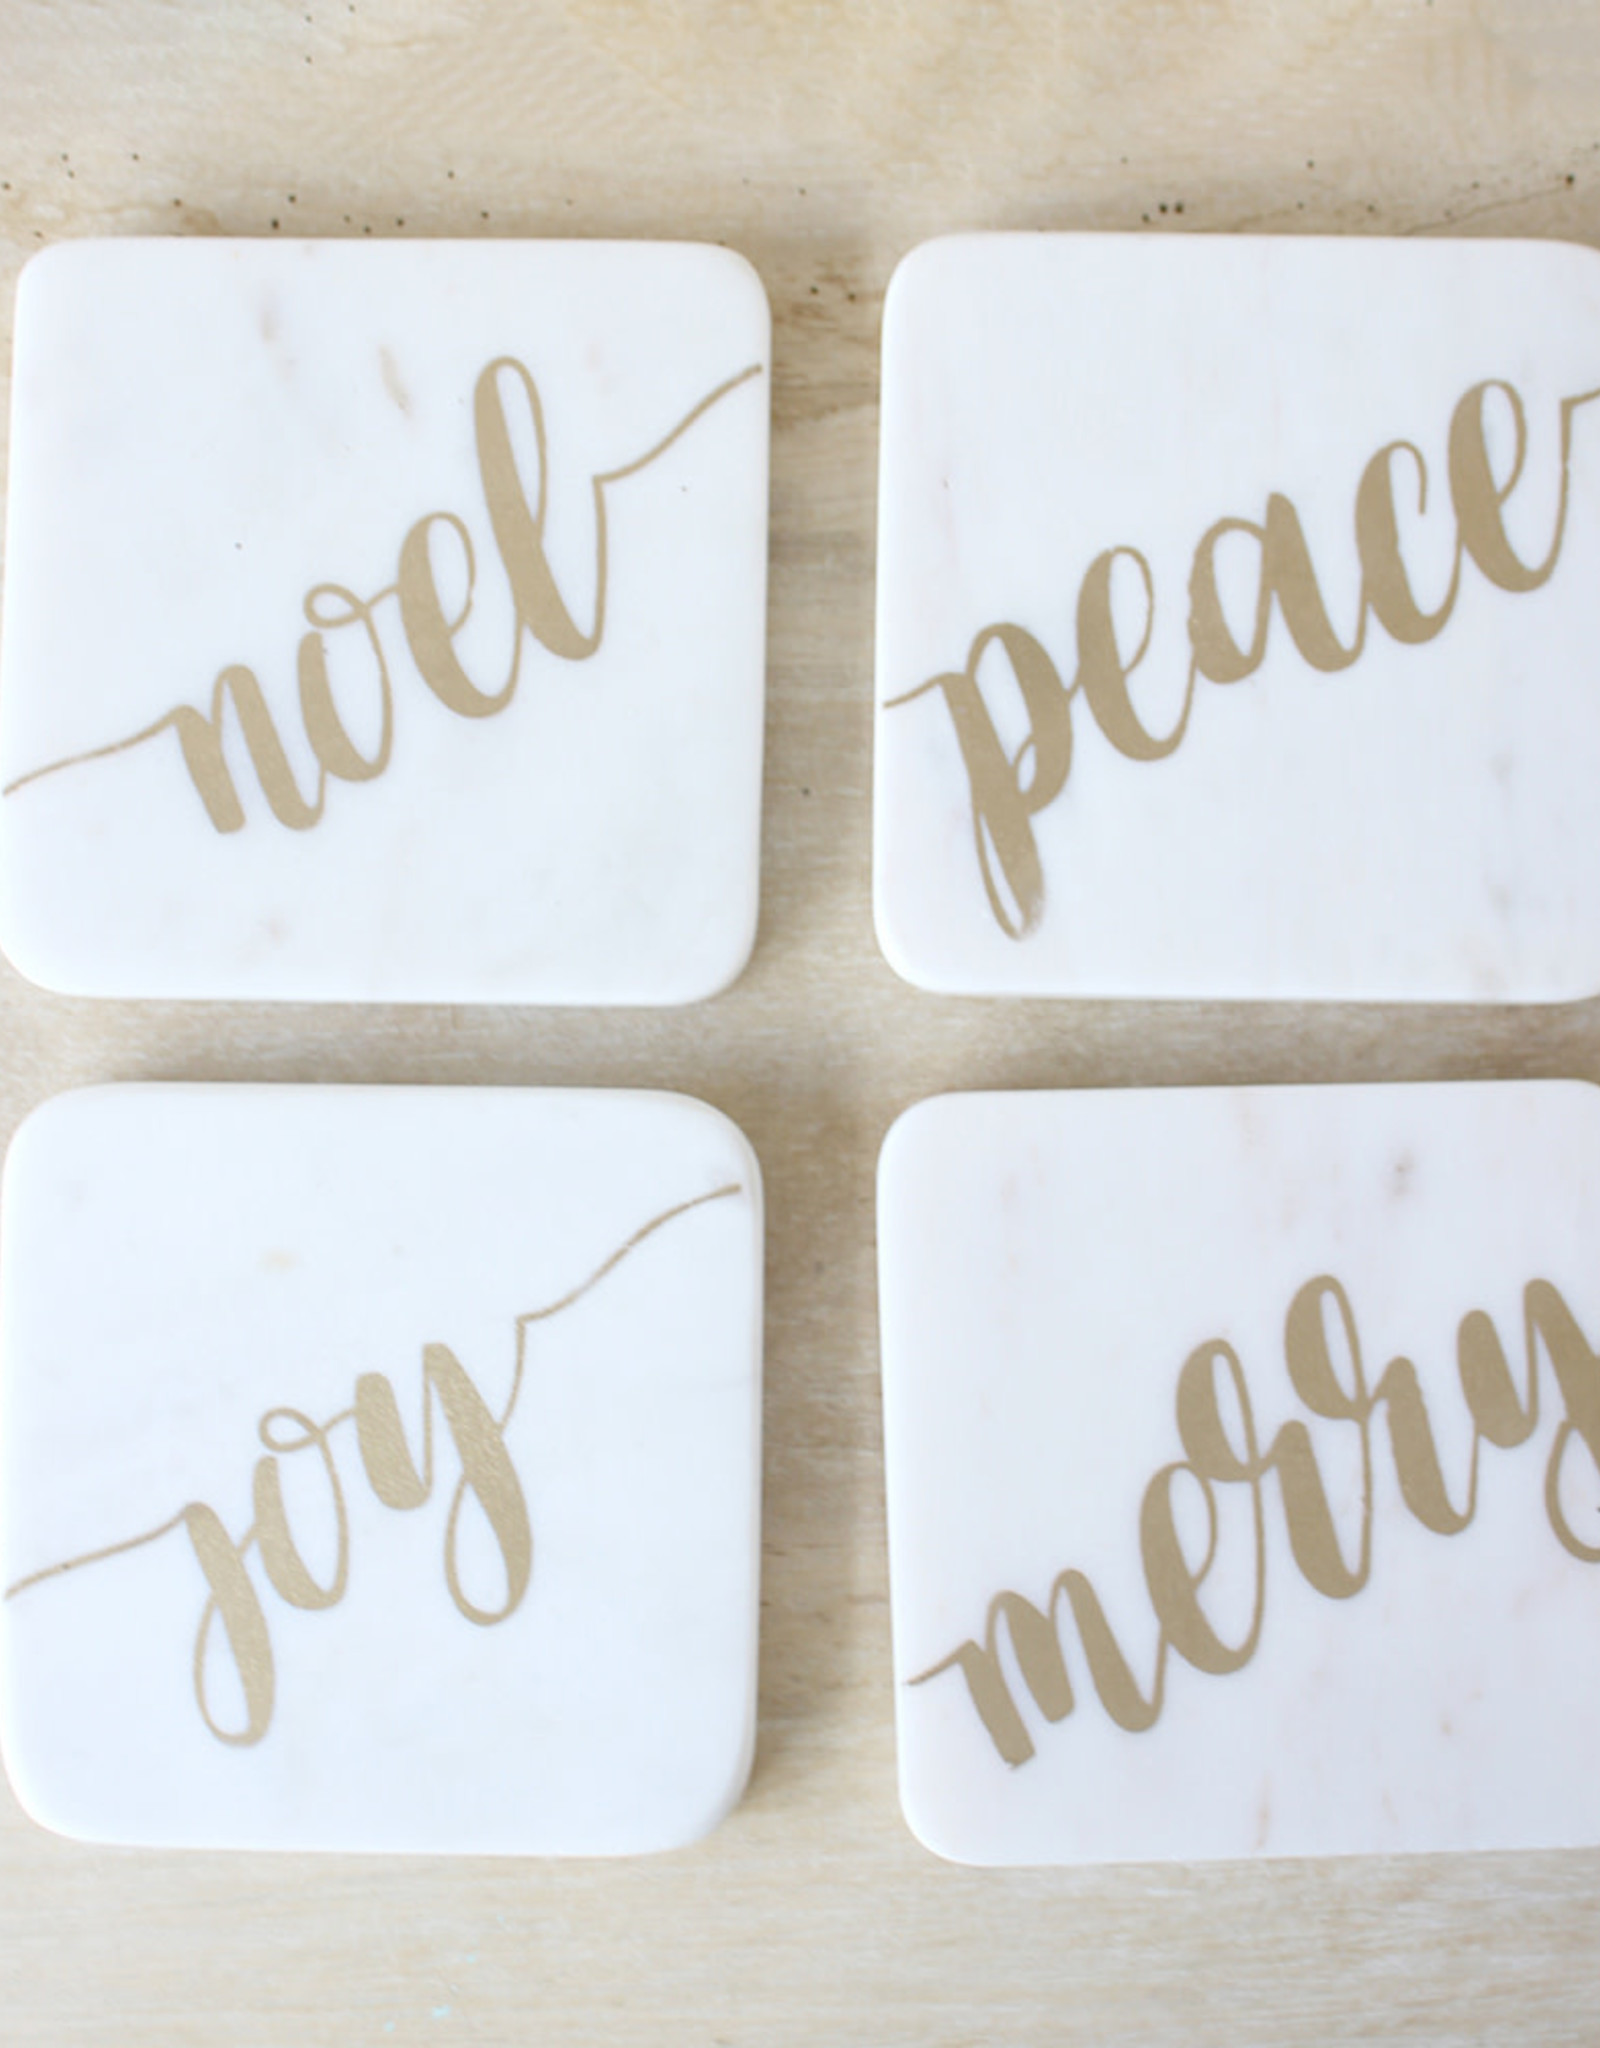 Wink Christmas Tidings Marble Coasters White/Gold